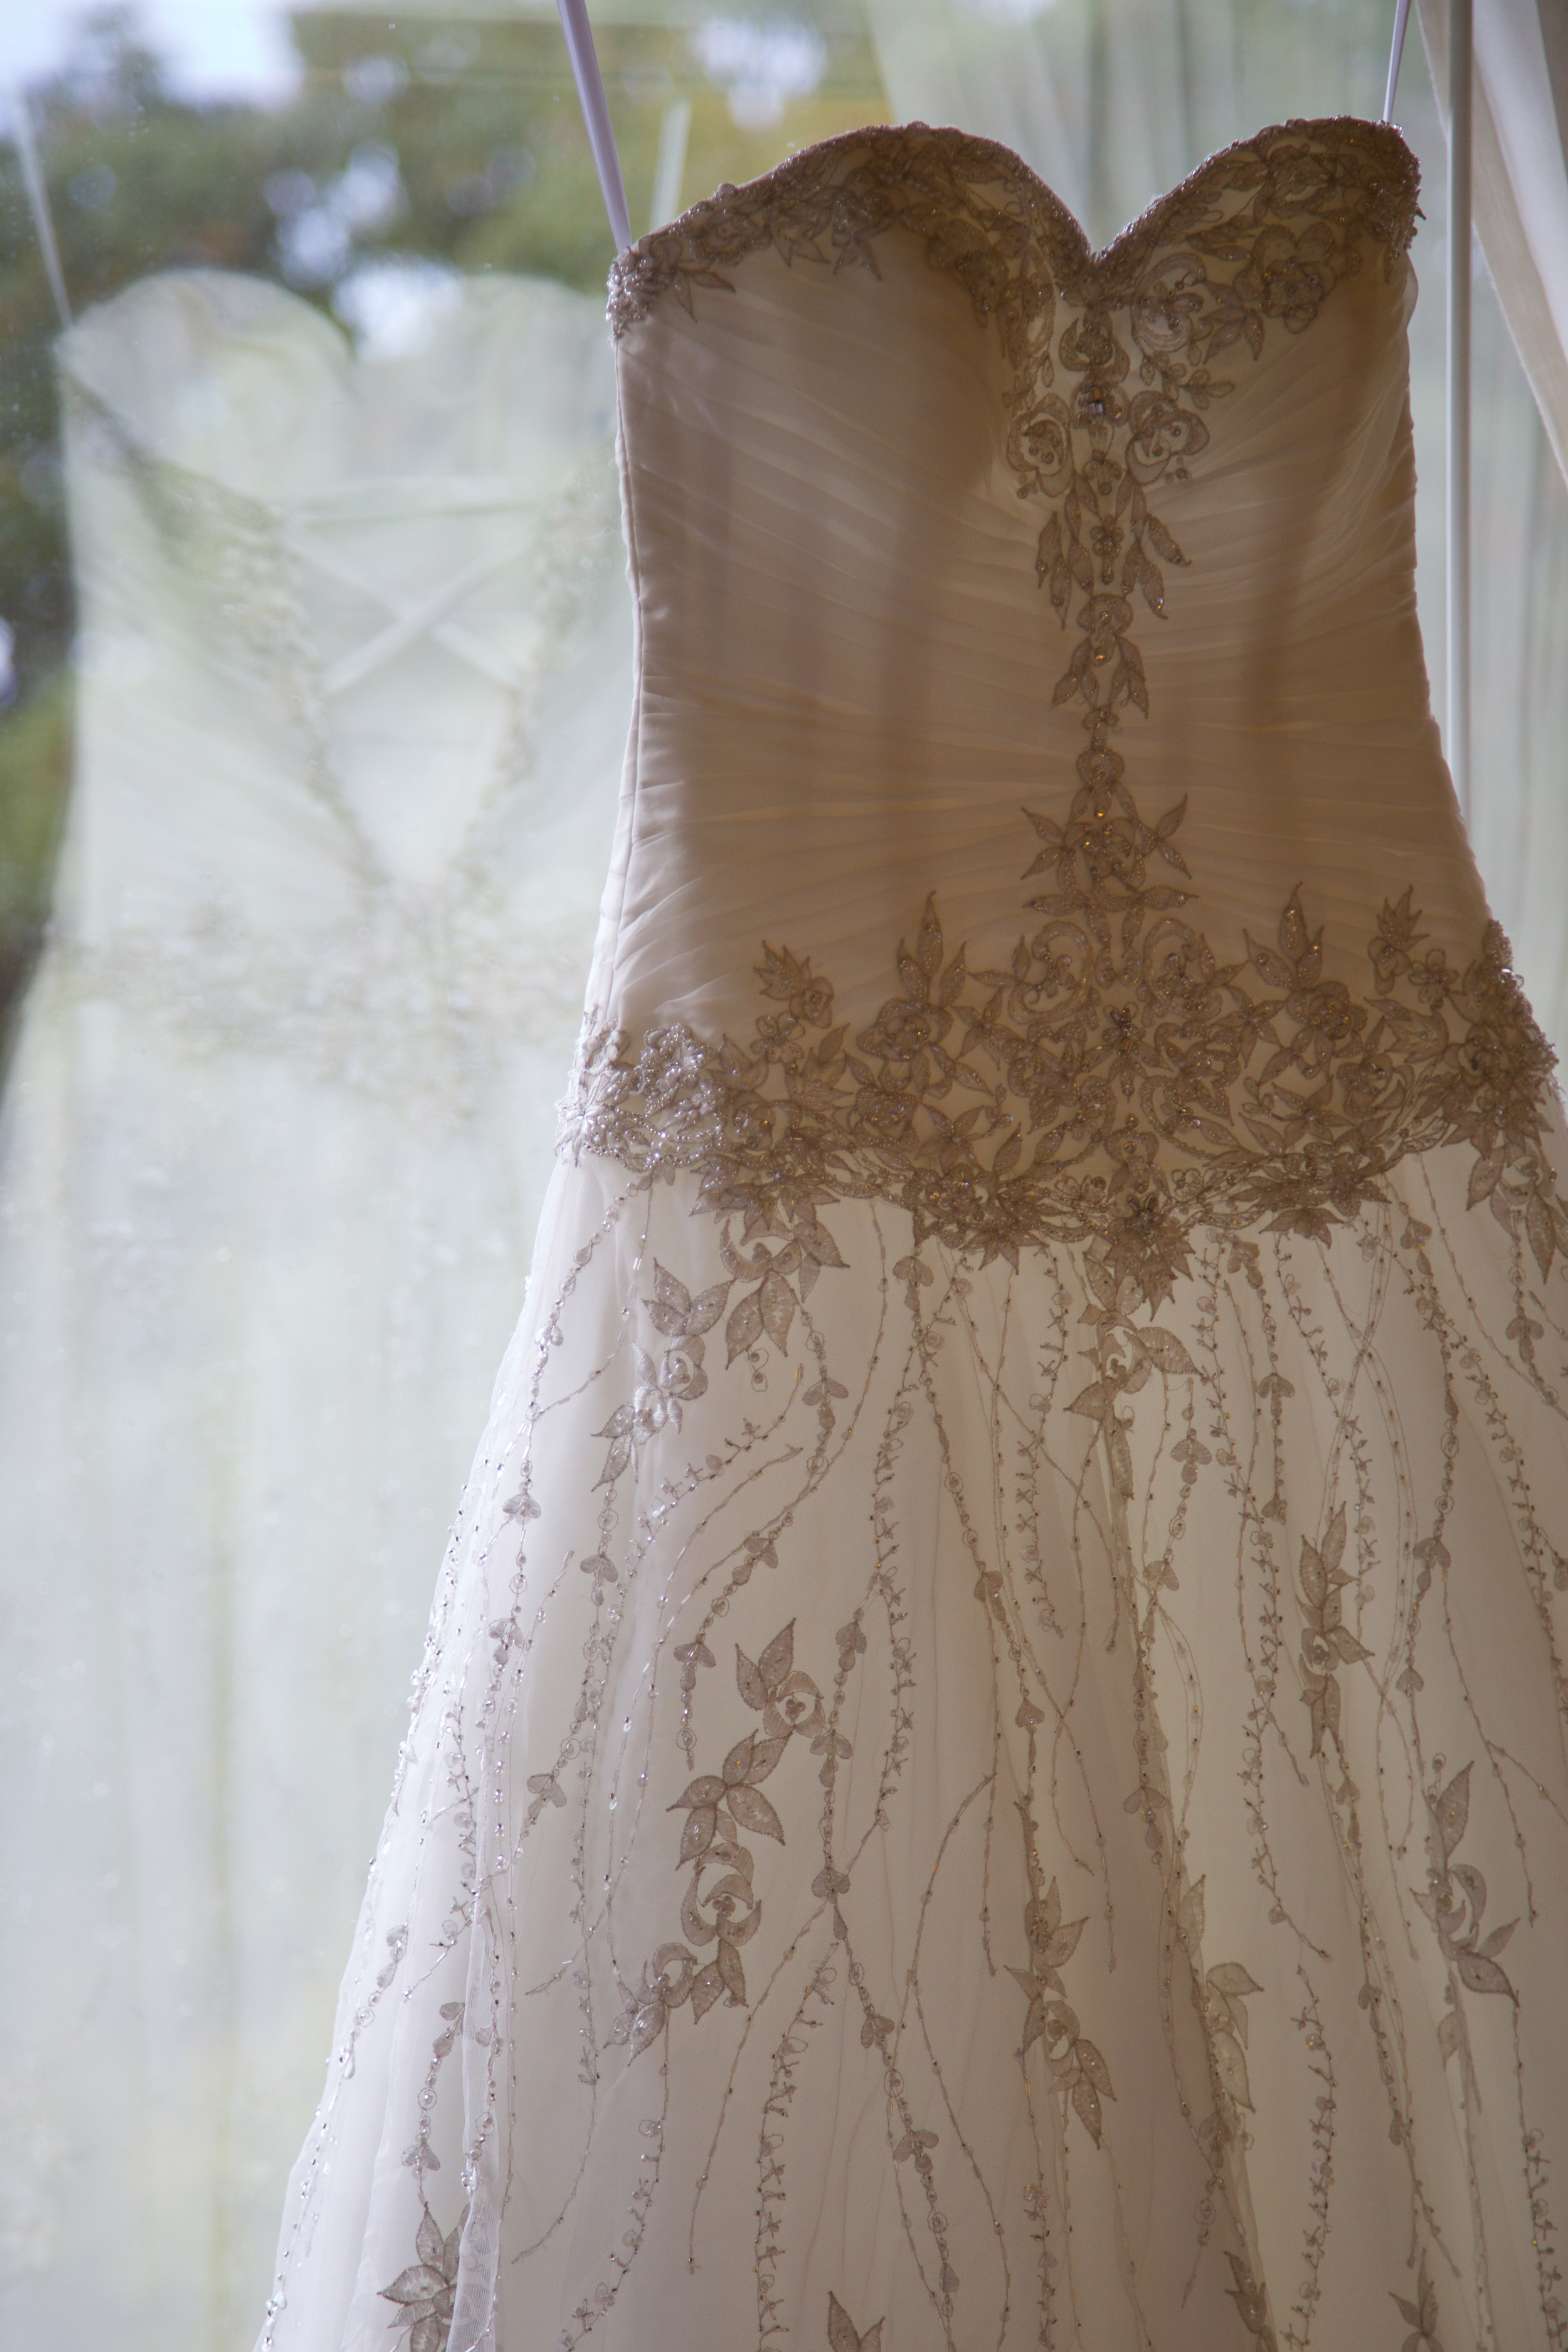 the bead work in this dress was amazing!